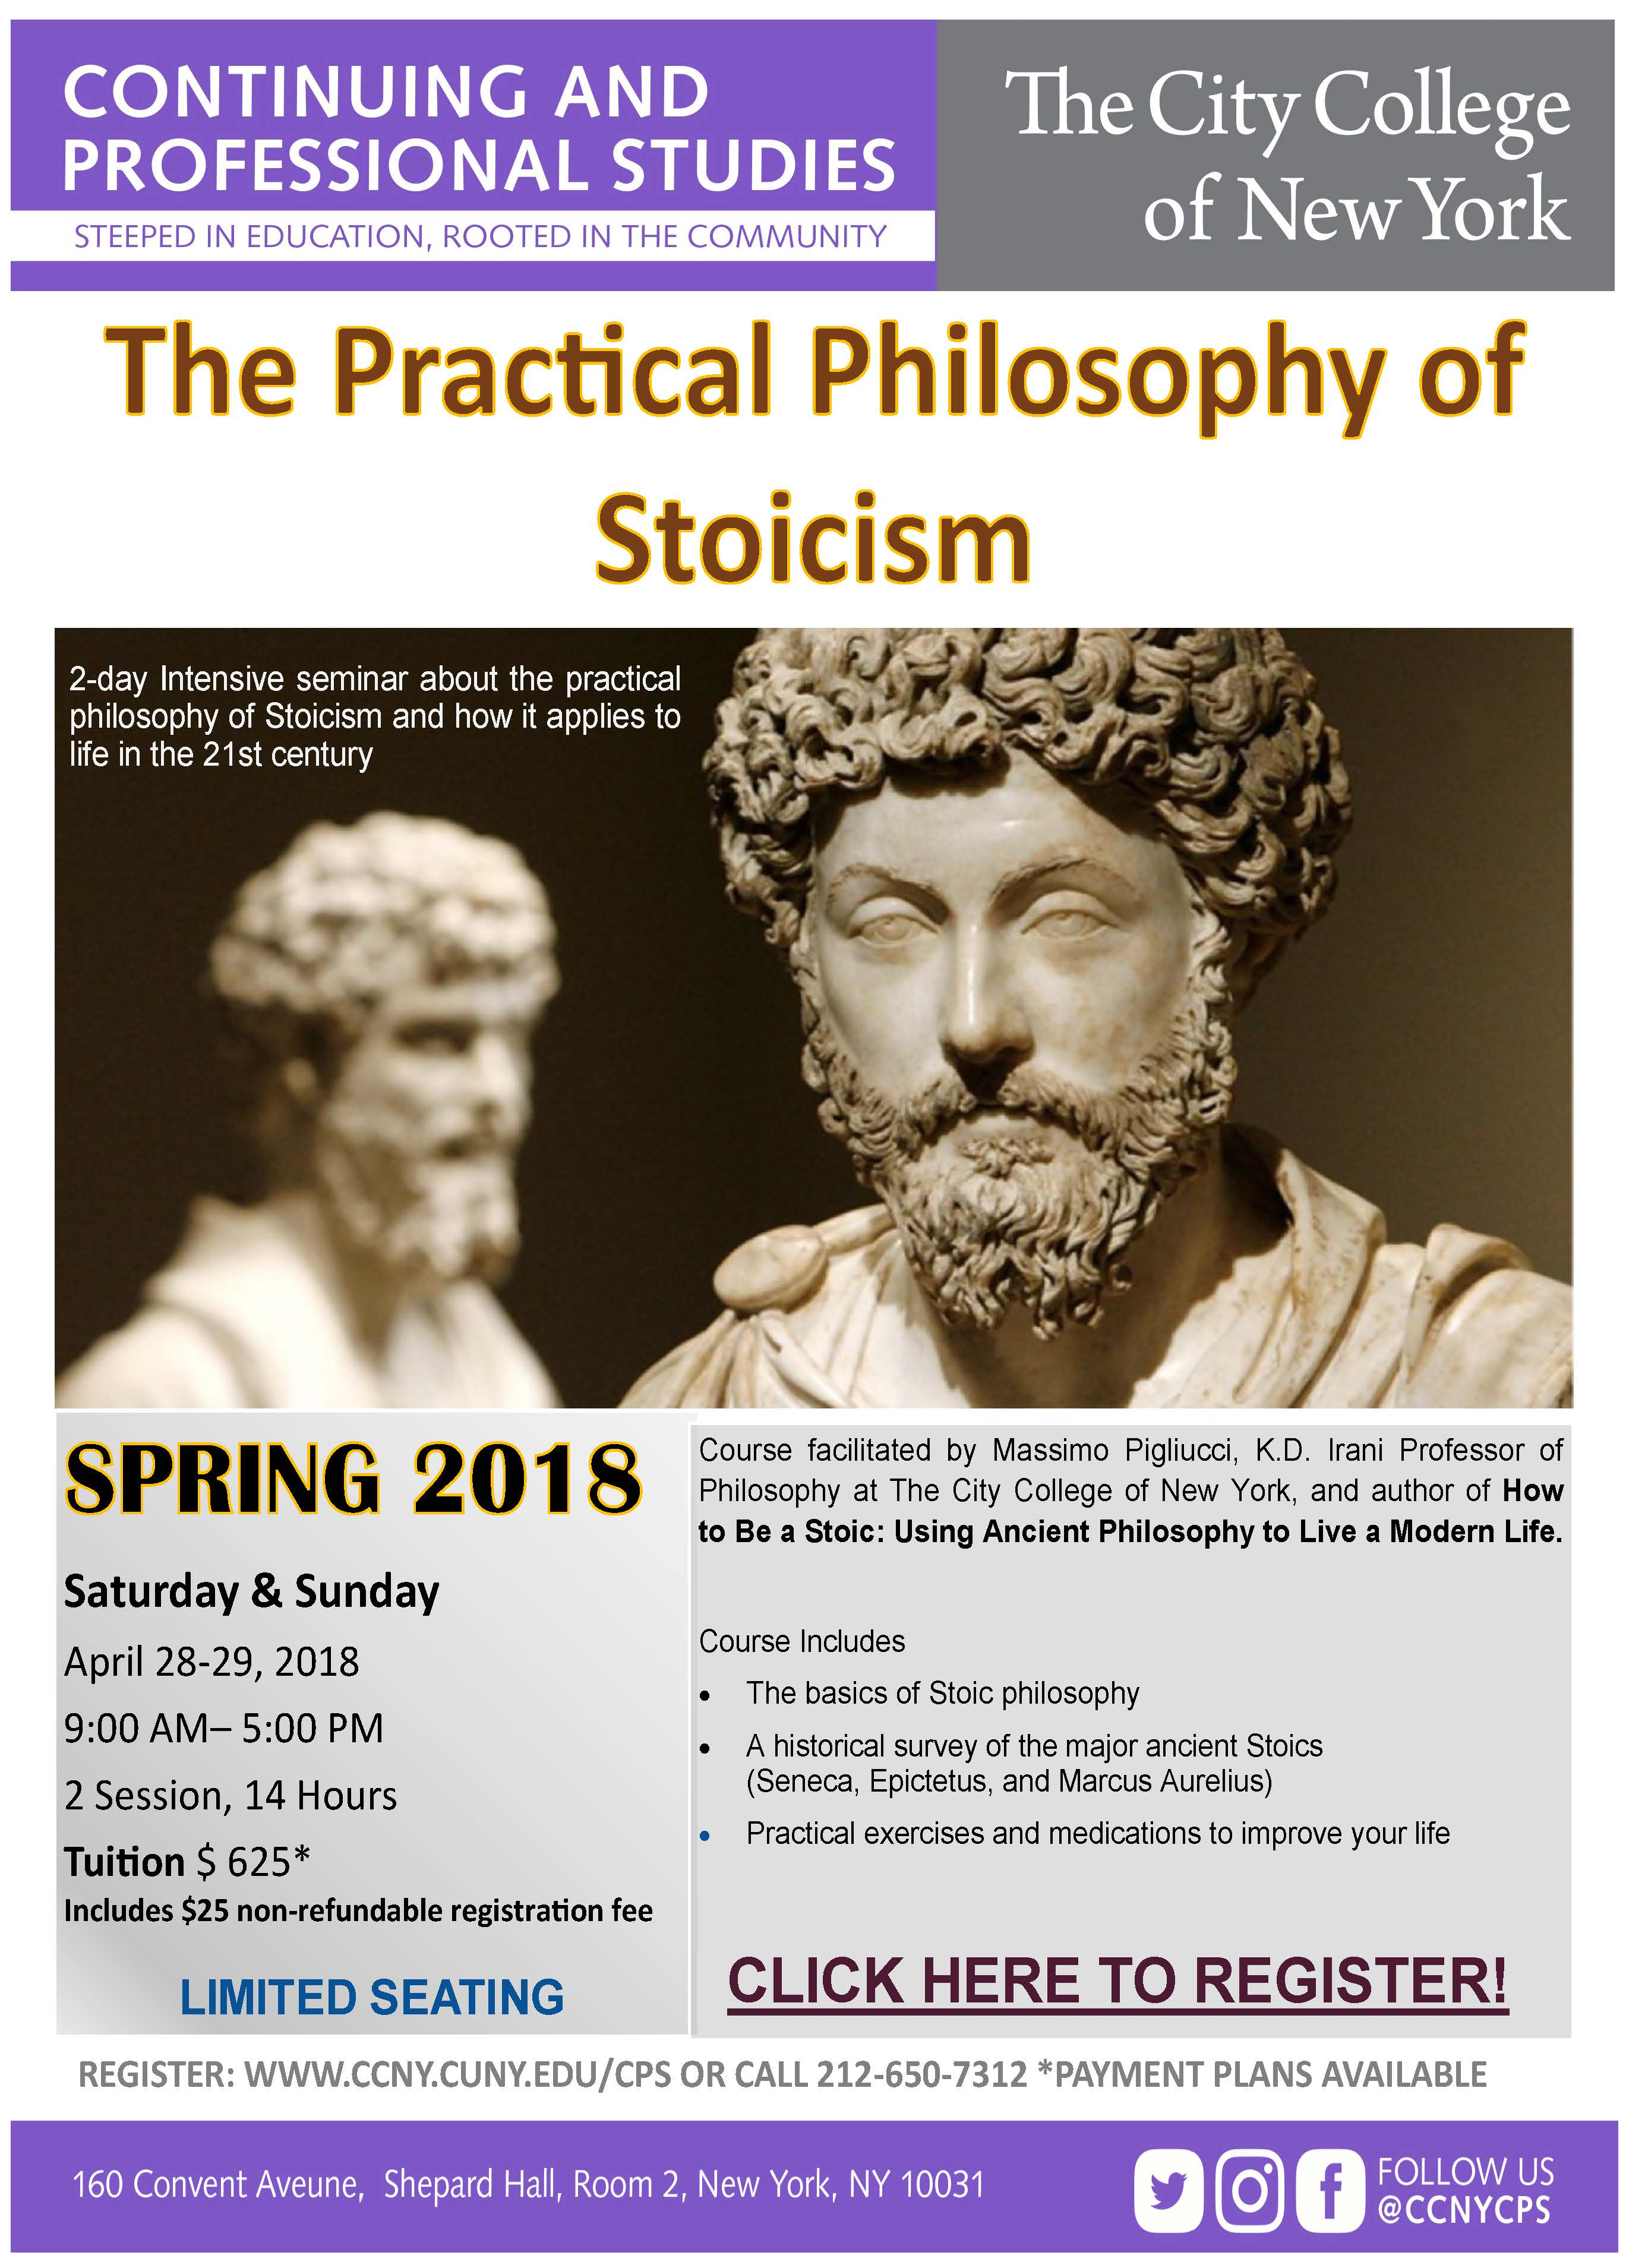 The Practical Philosophy of Stoicism